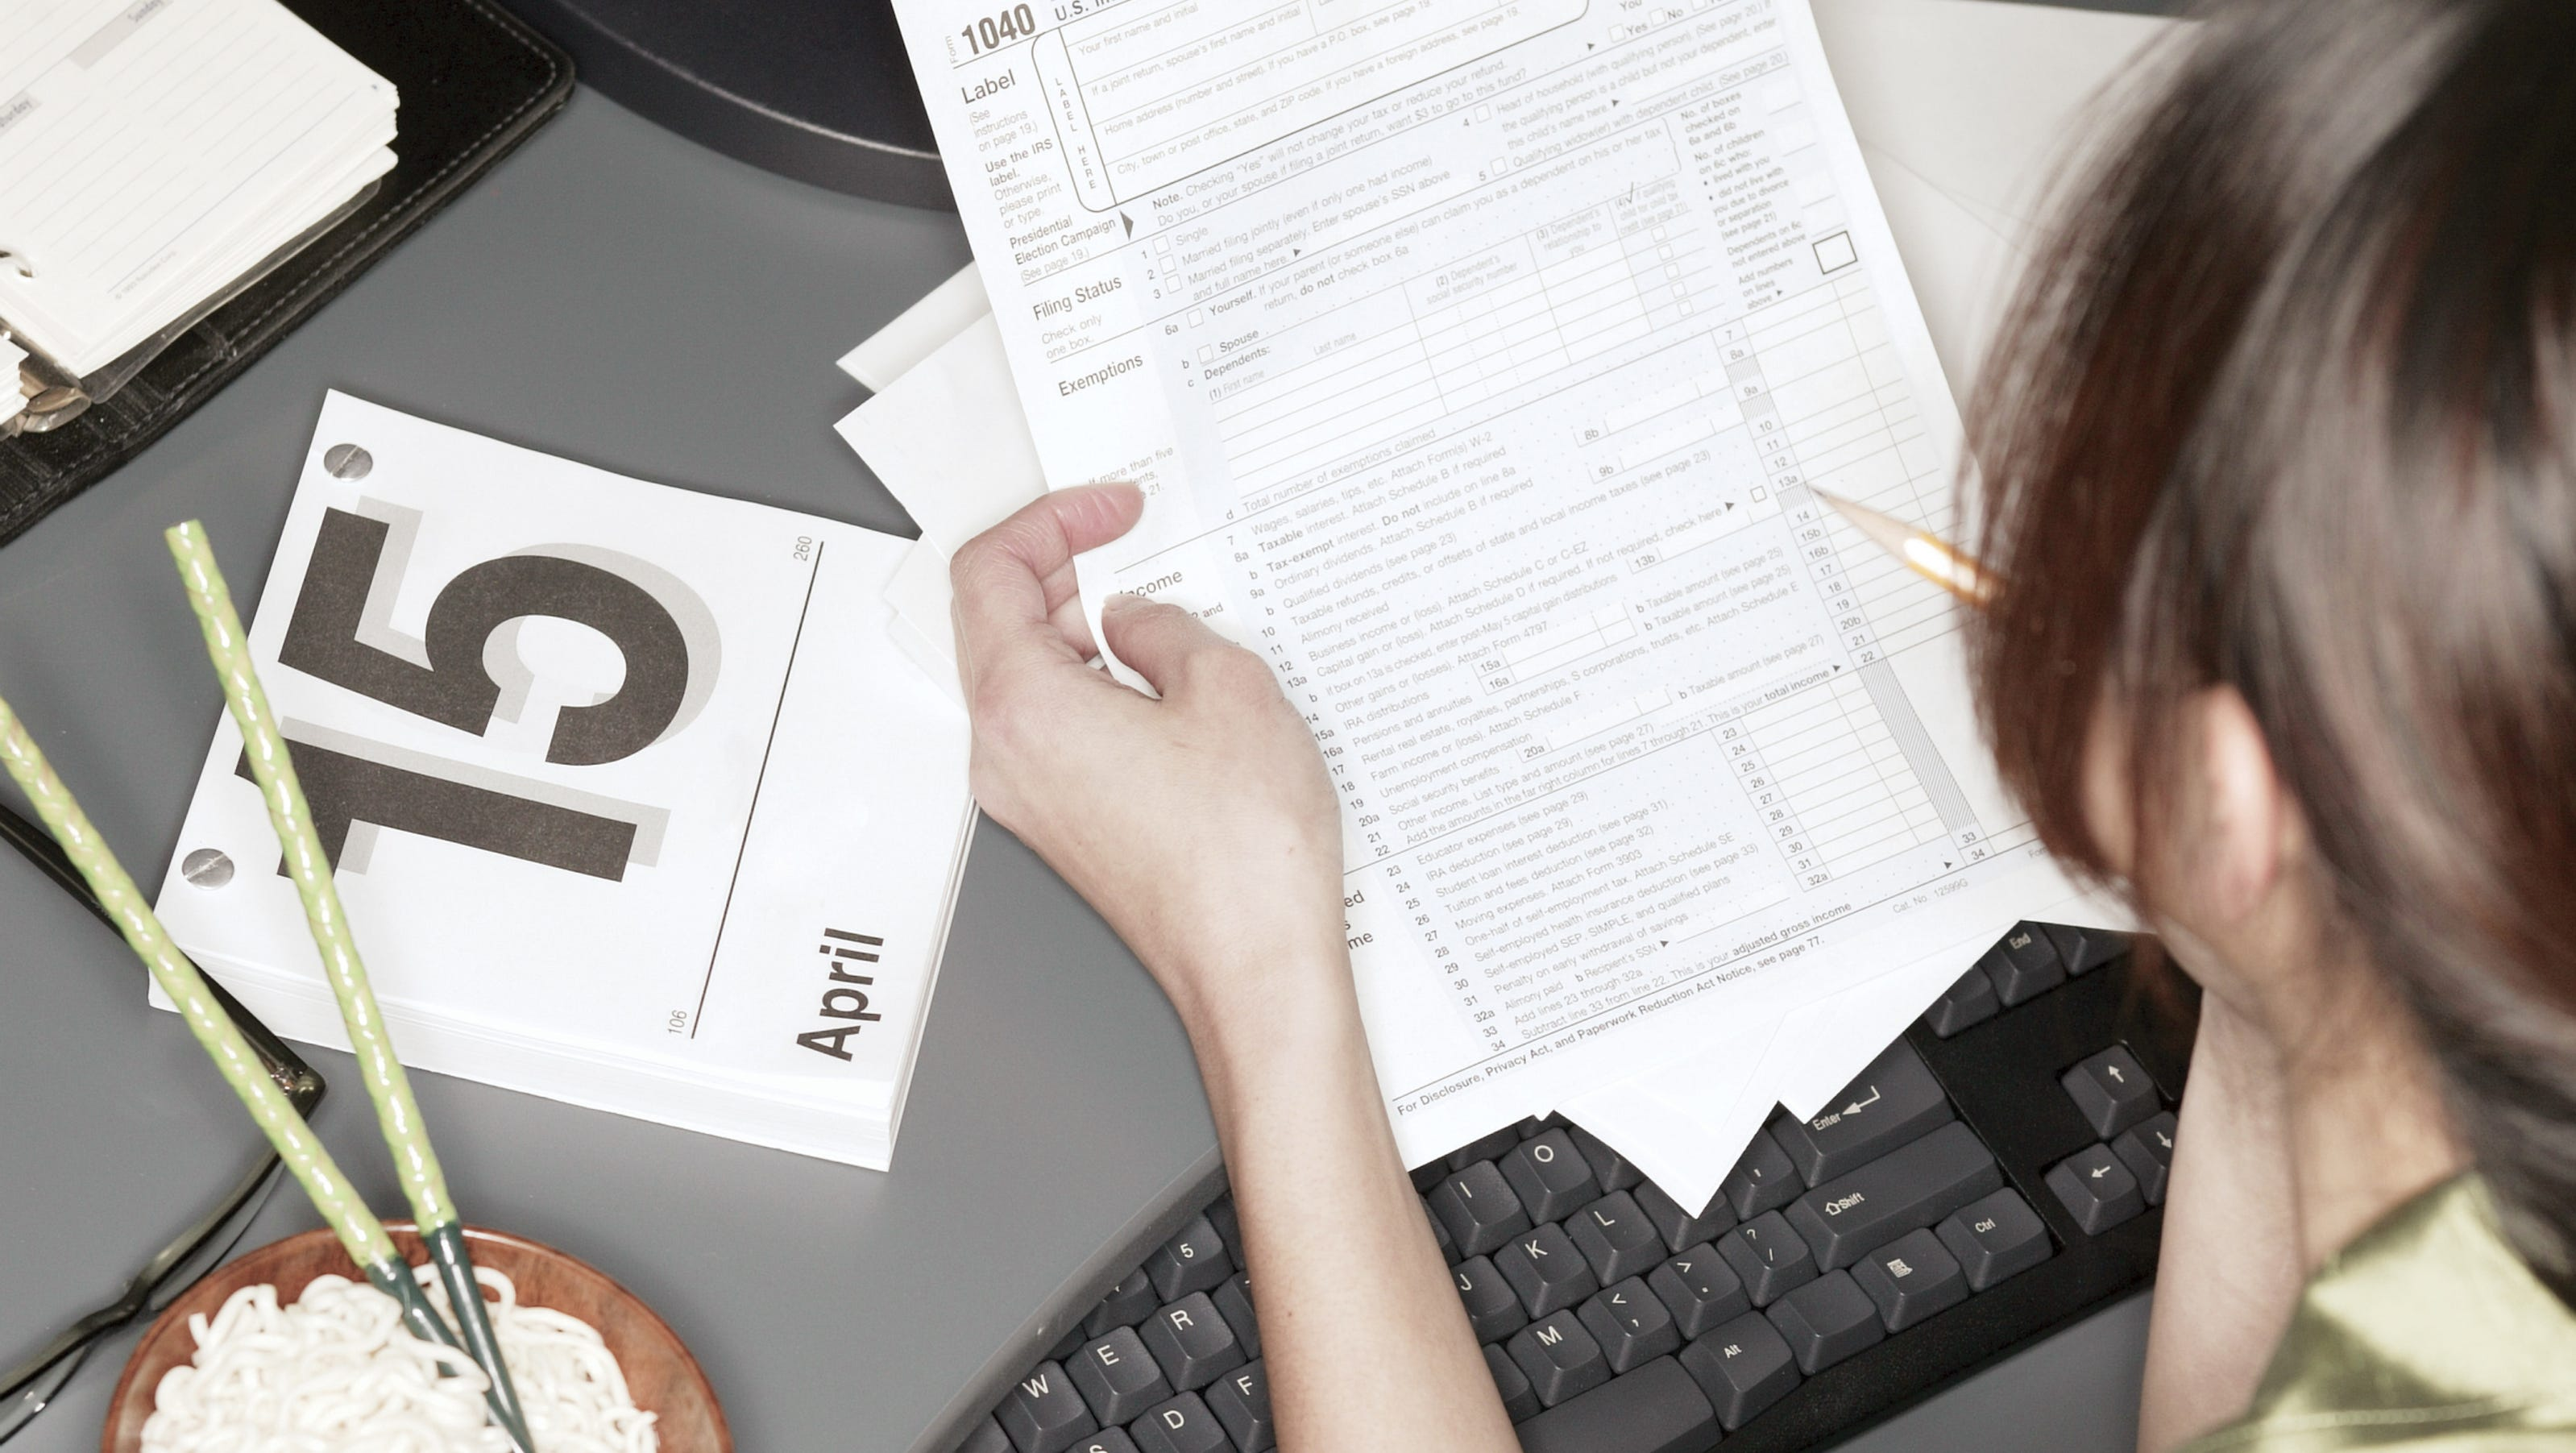 Discussion on this topic: Last-Minute Tax Tips, last-minute-tax-tips/